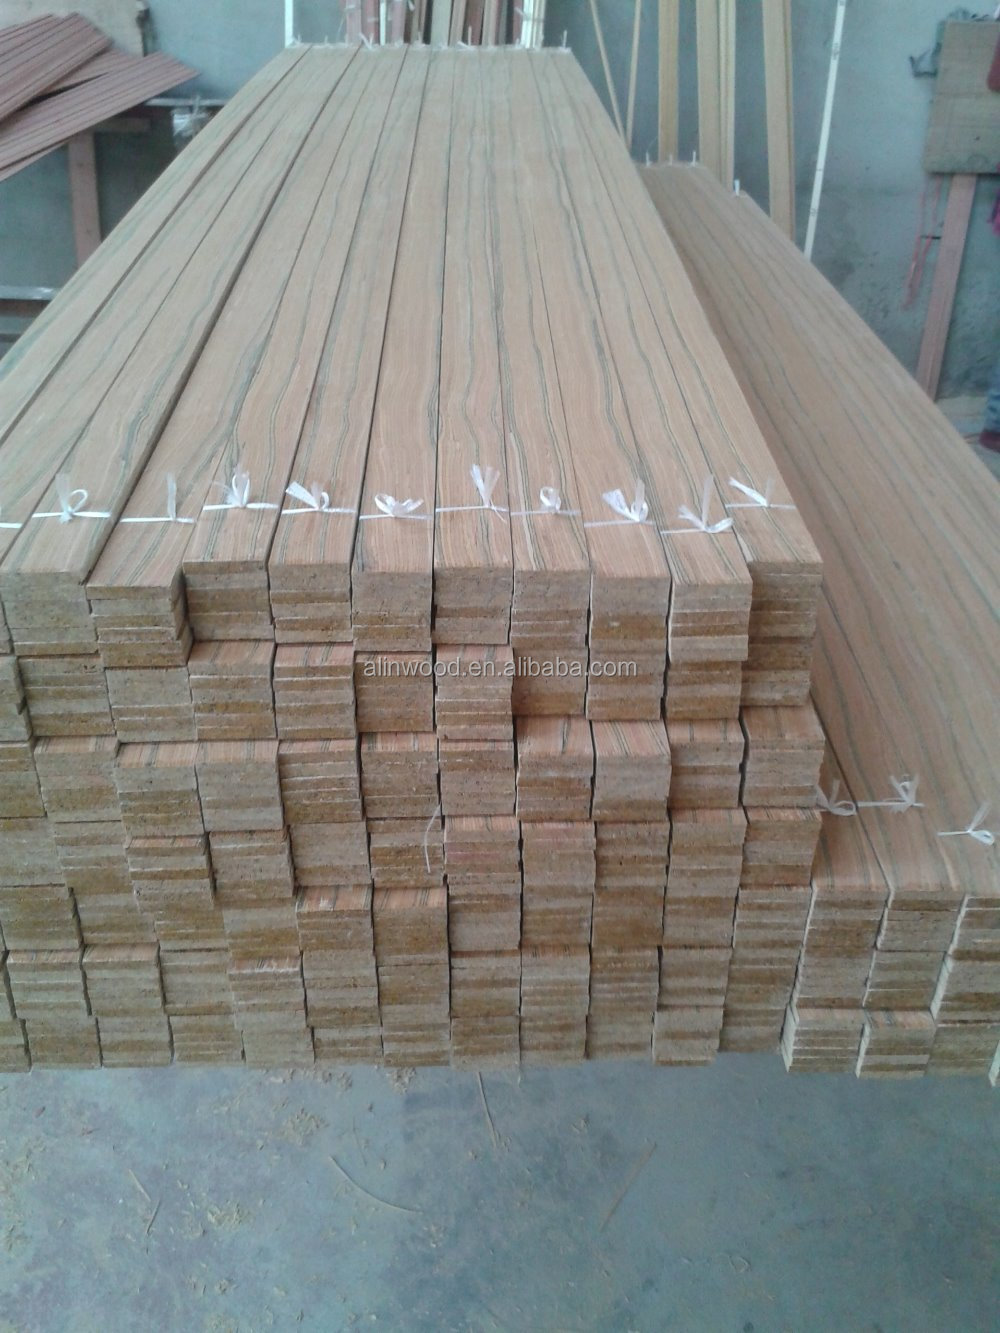 Decorative wood moulding with groove,made in china!